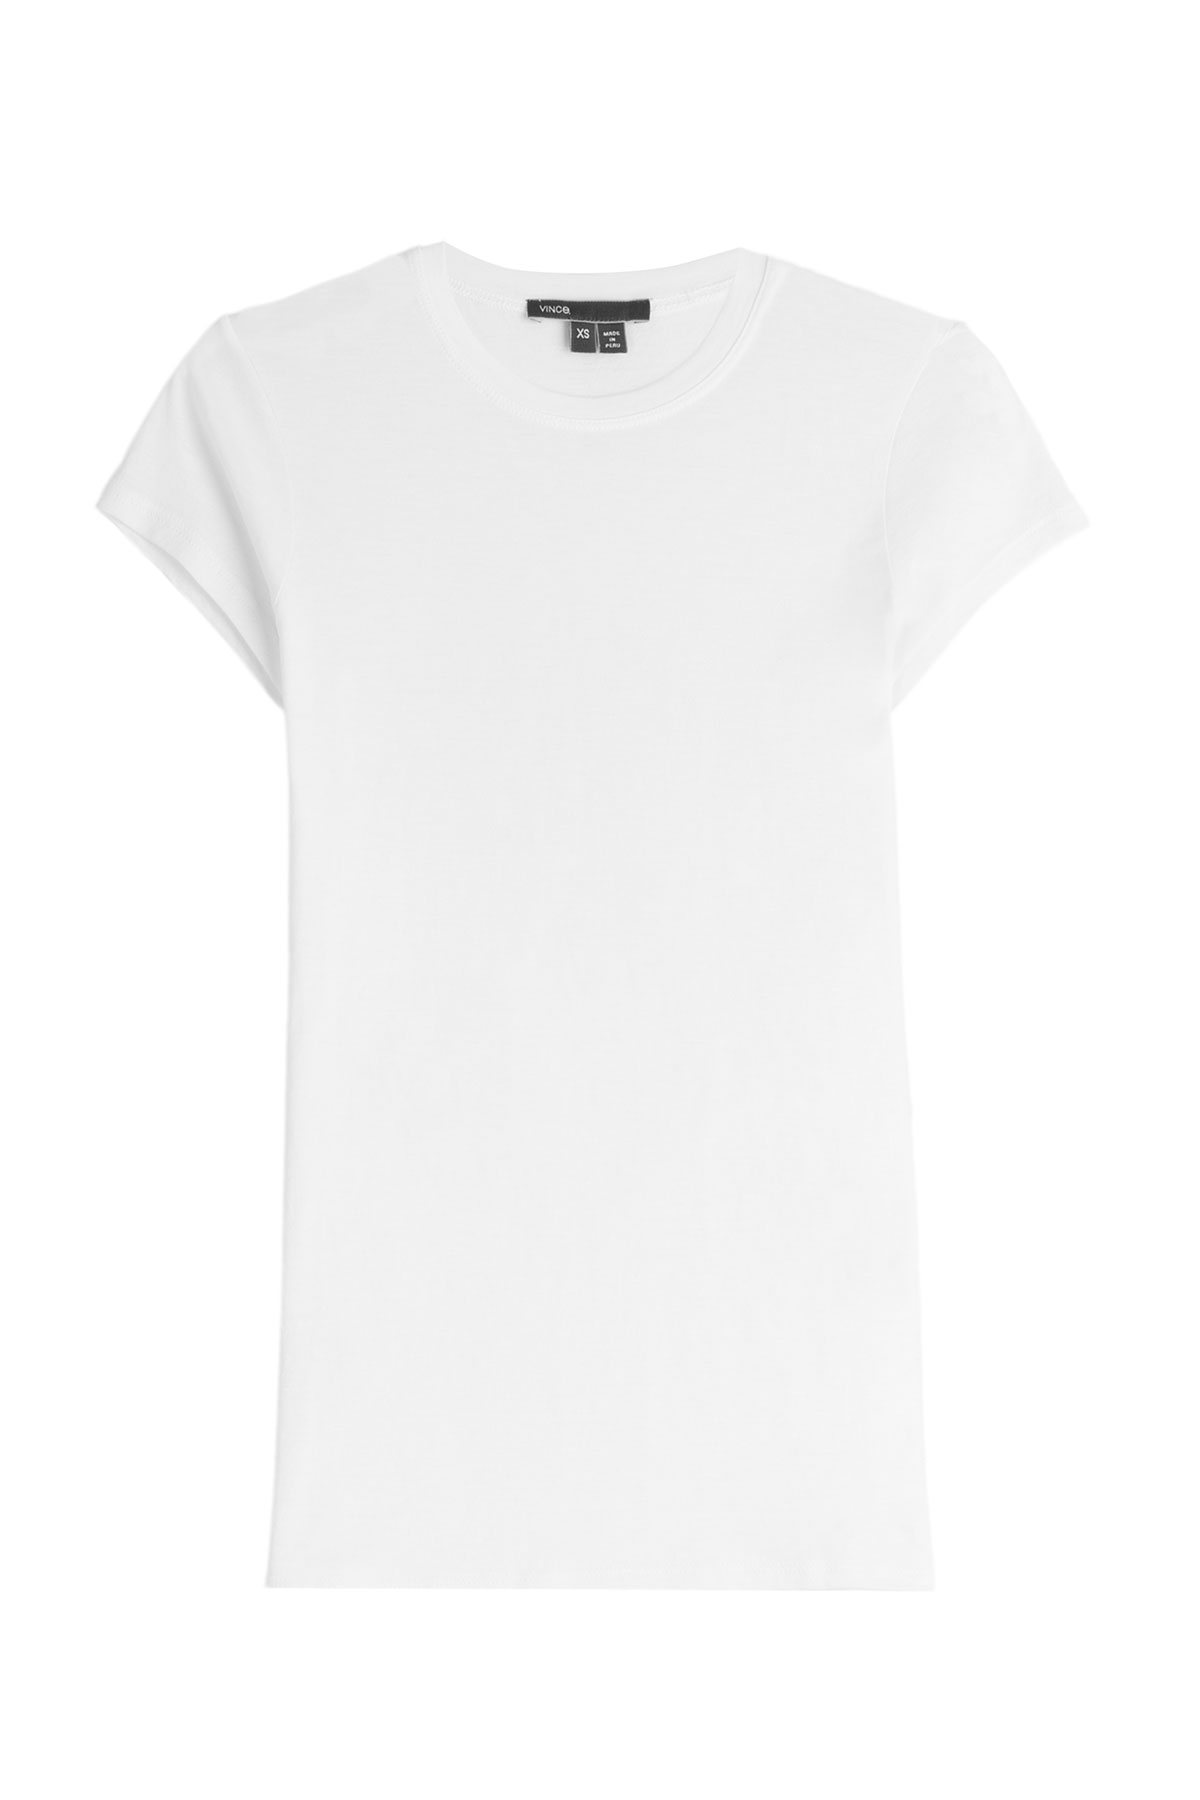 10 Best White T Shirts  Perfect White Tee Shirts To Add